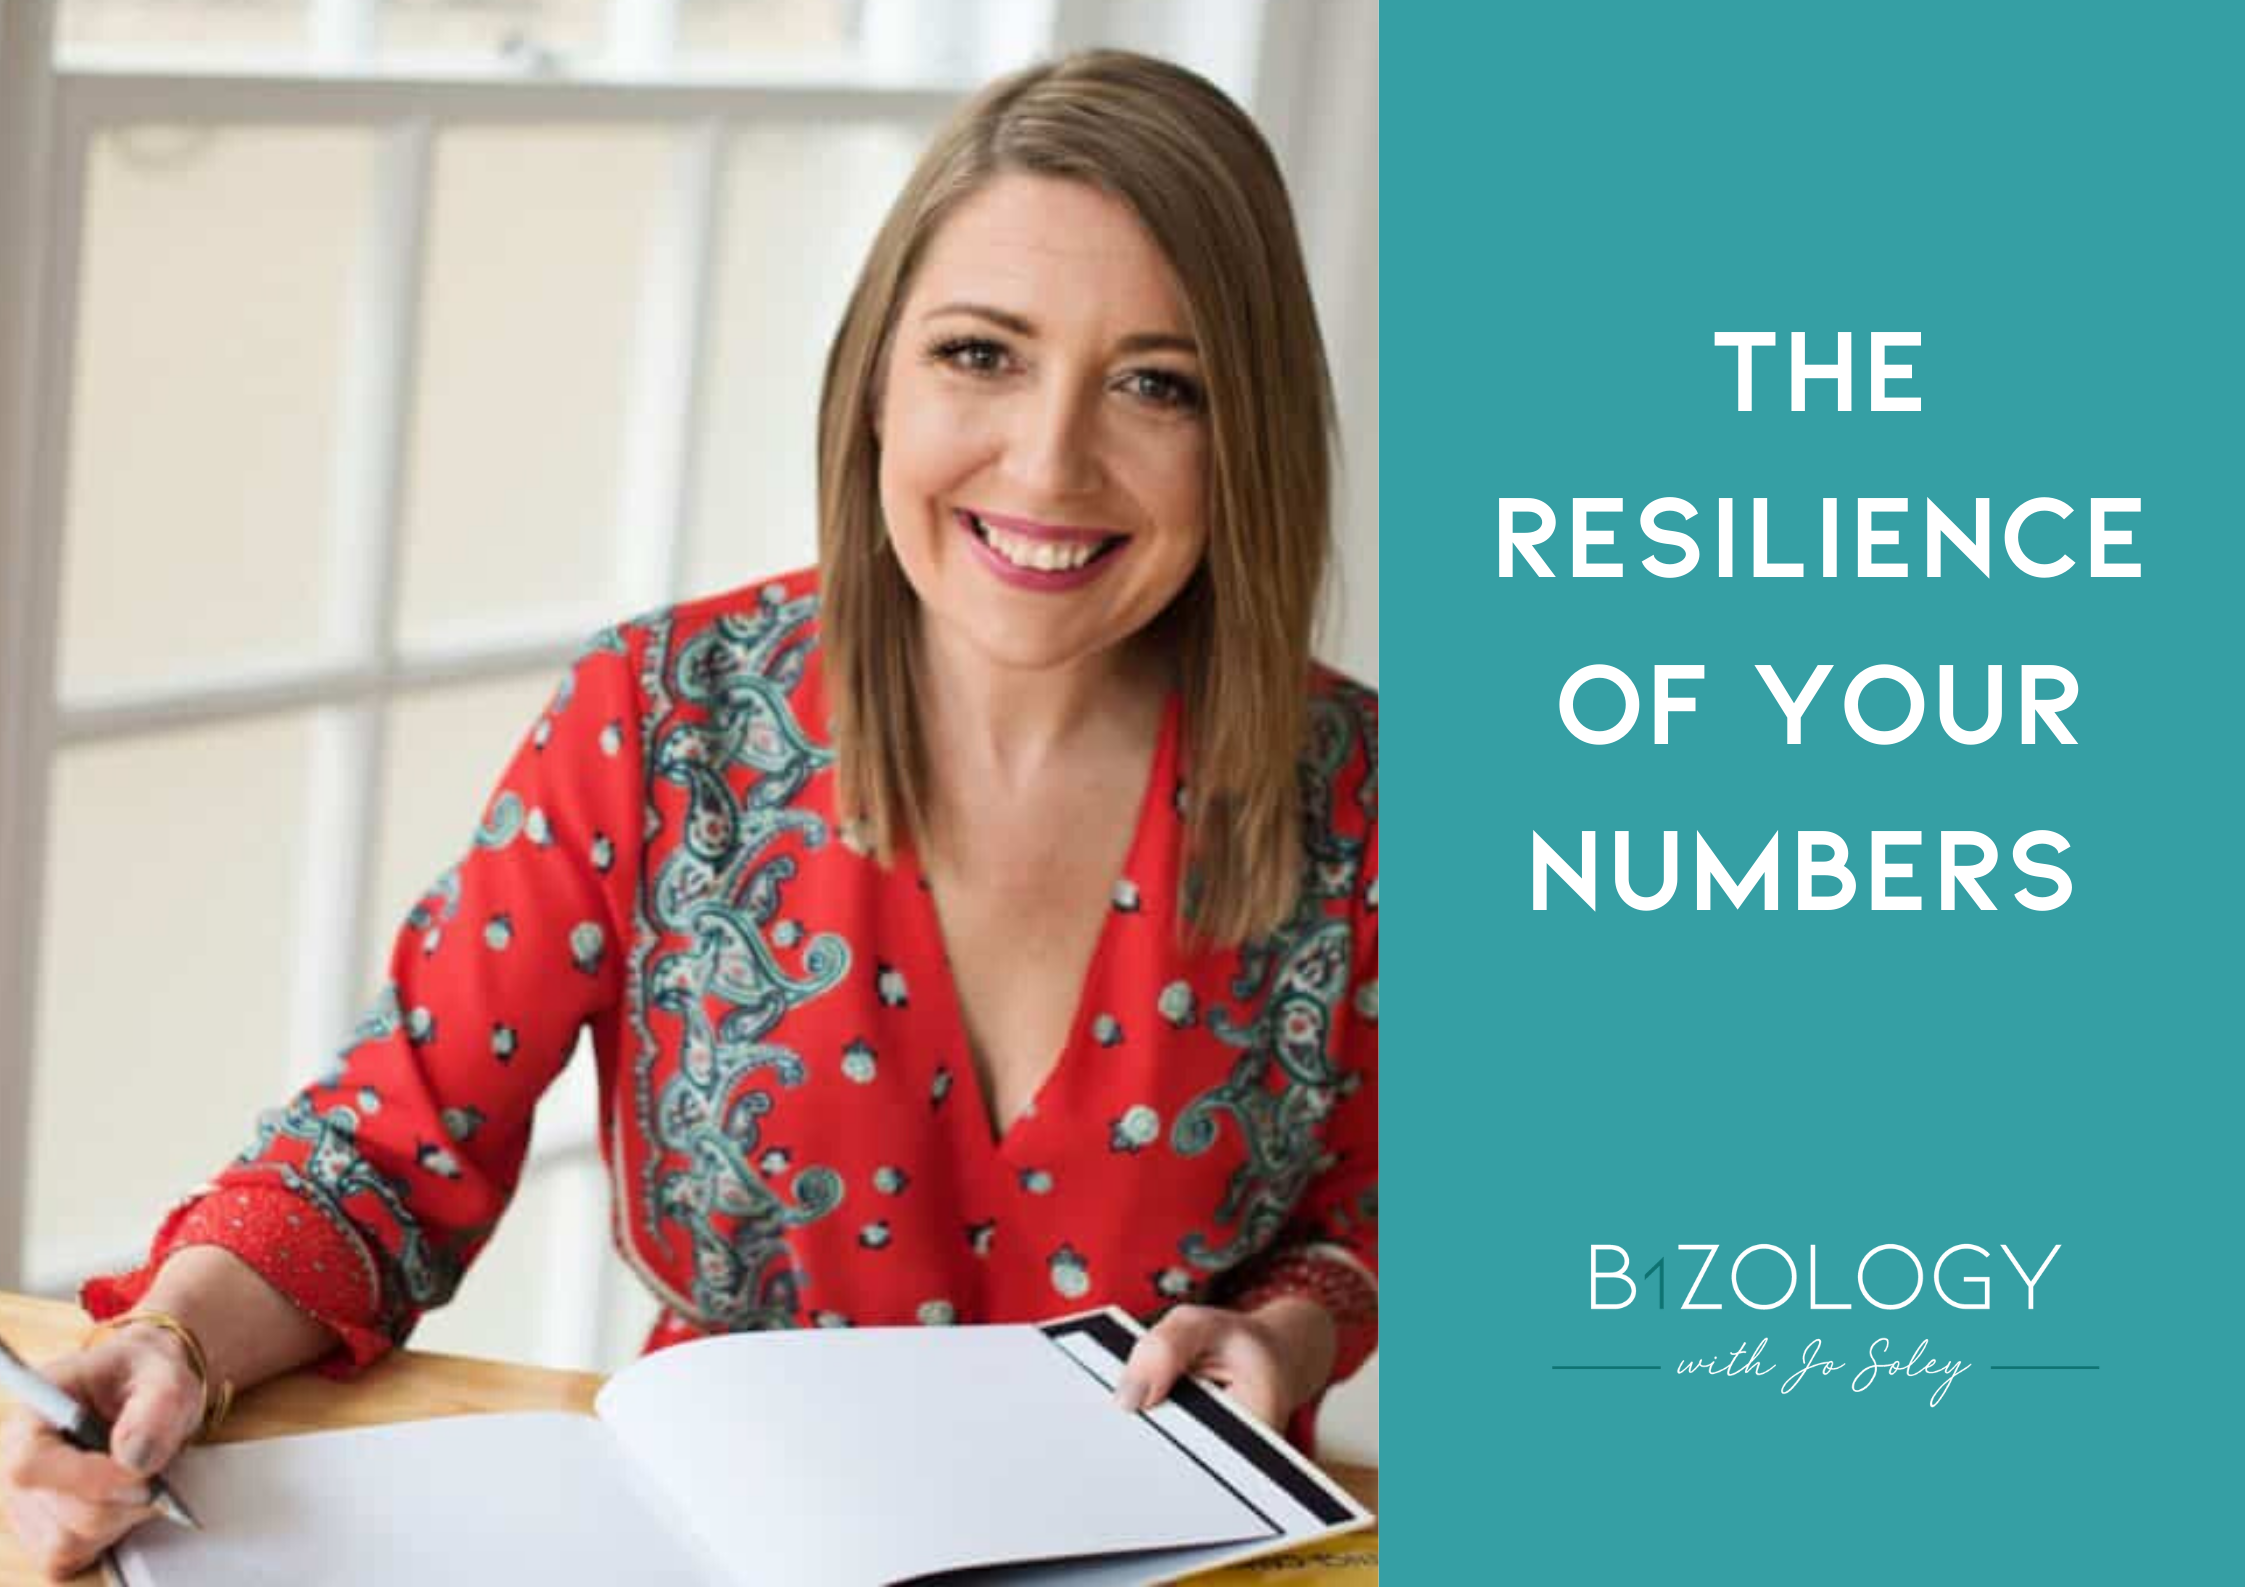 How to use numerology and the resilience of your numbers